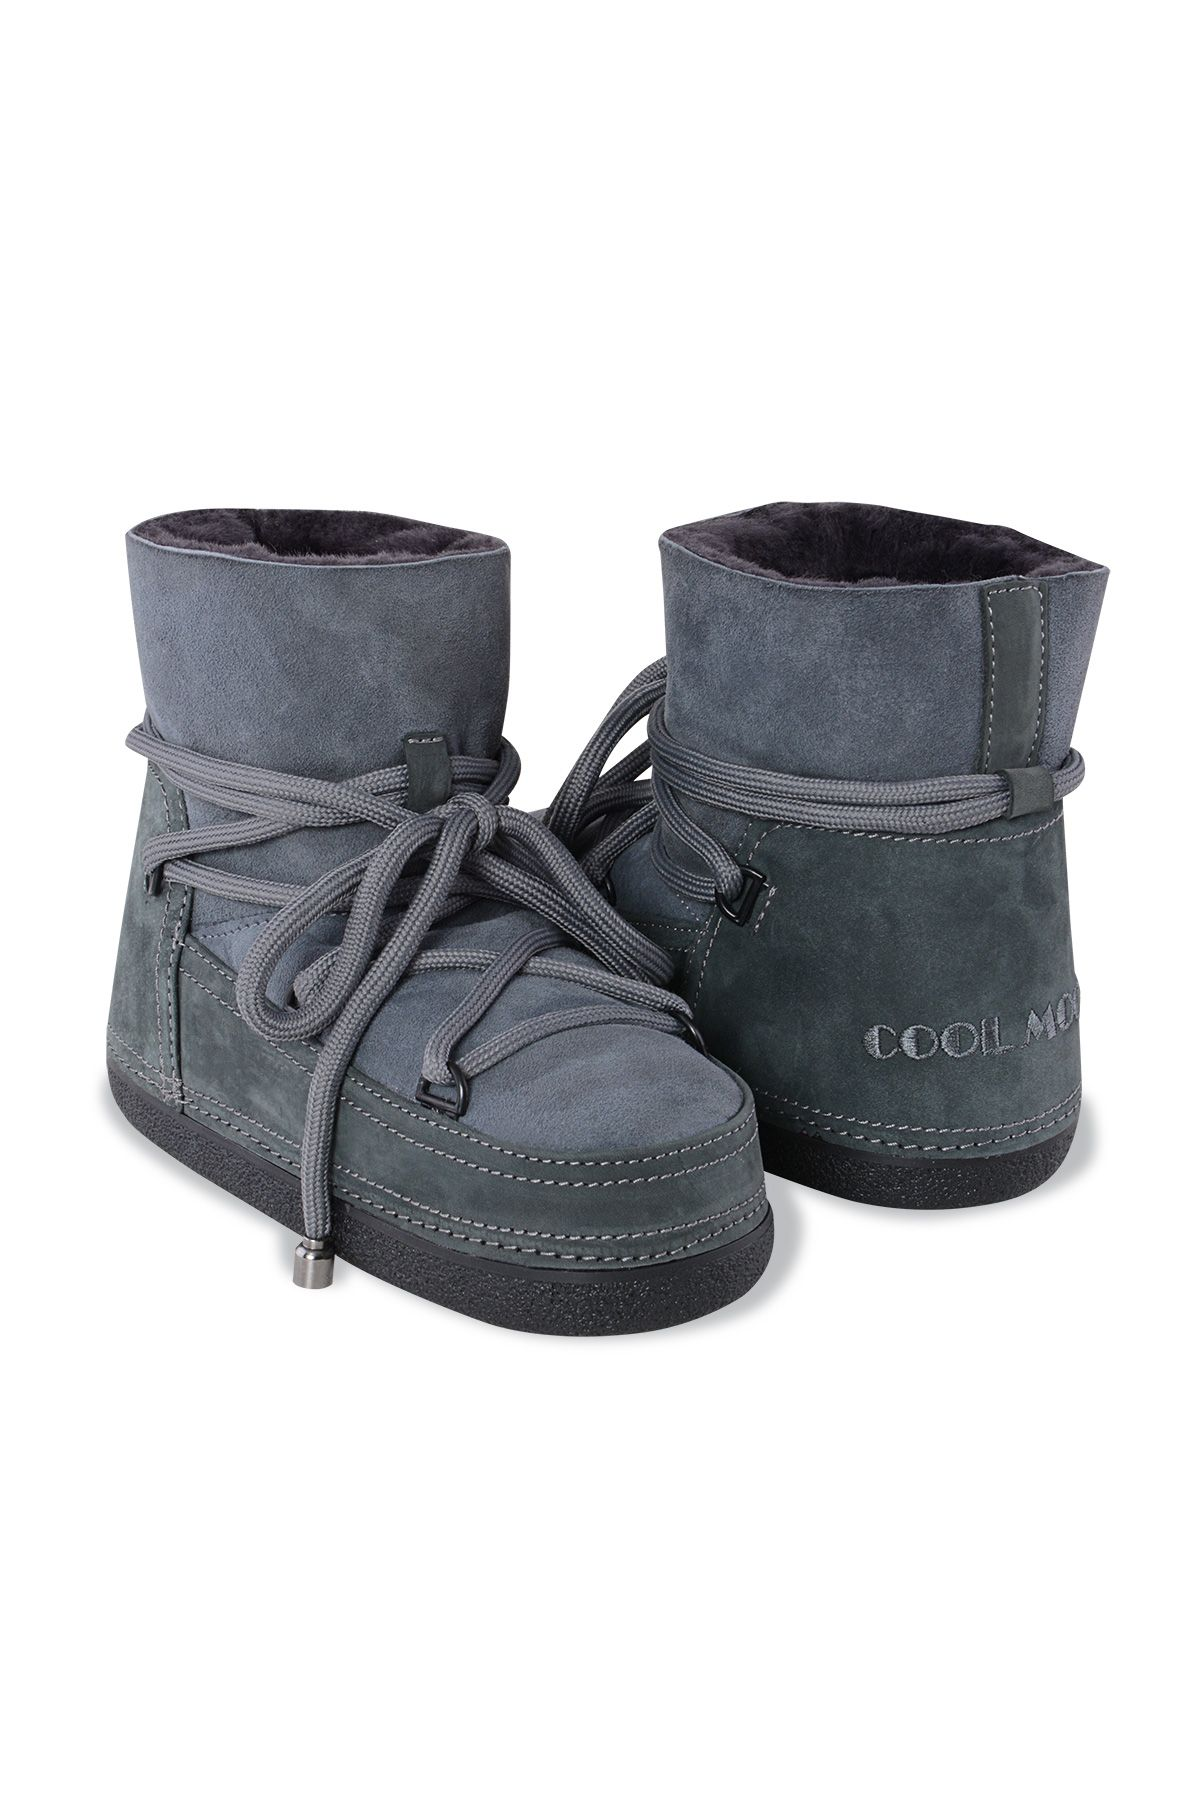 Cool Moon Genuine Suede & Shearling Women's Snowboots 251017 Gray